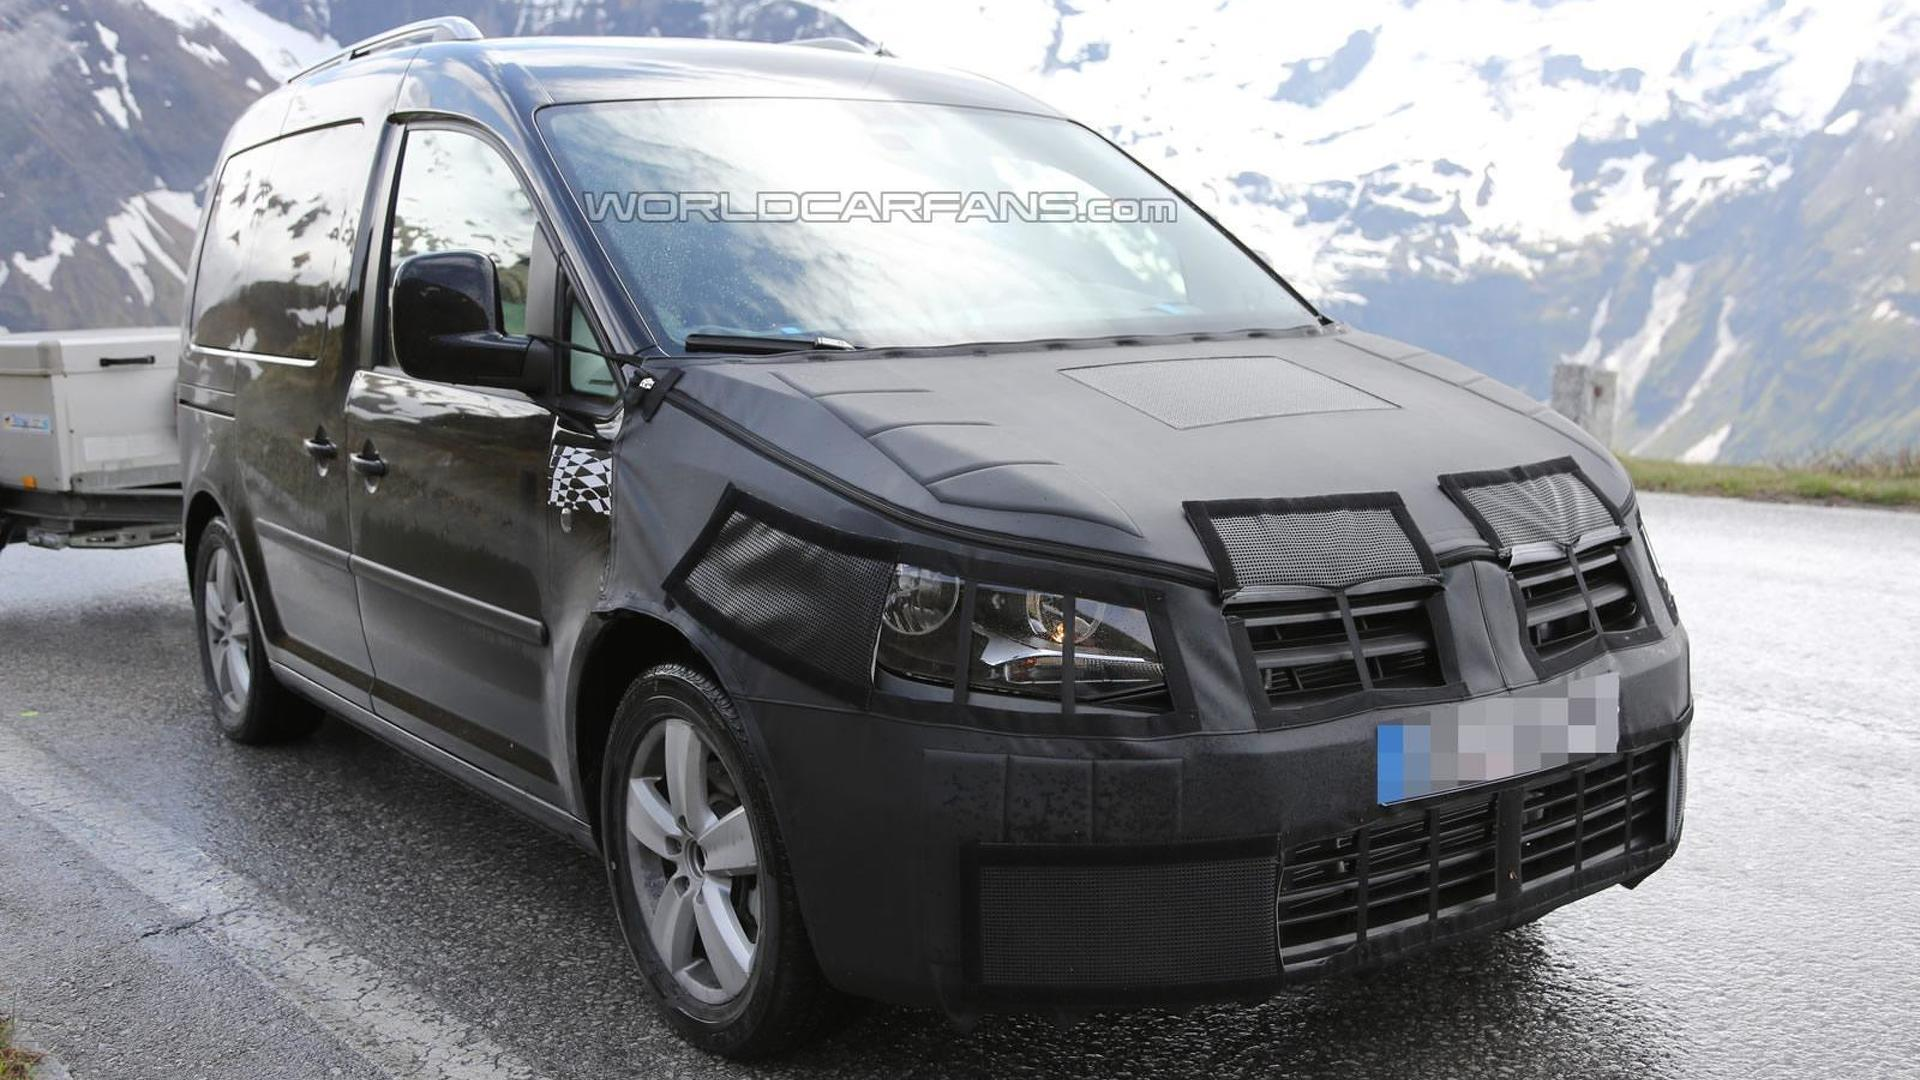 Volkswagen could offer the Caddy & Crafter in the United States